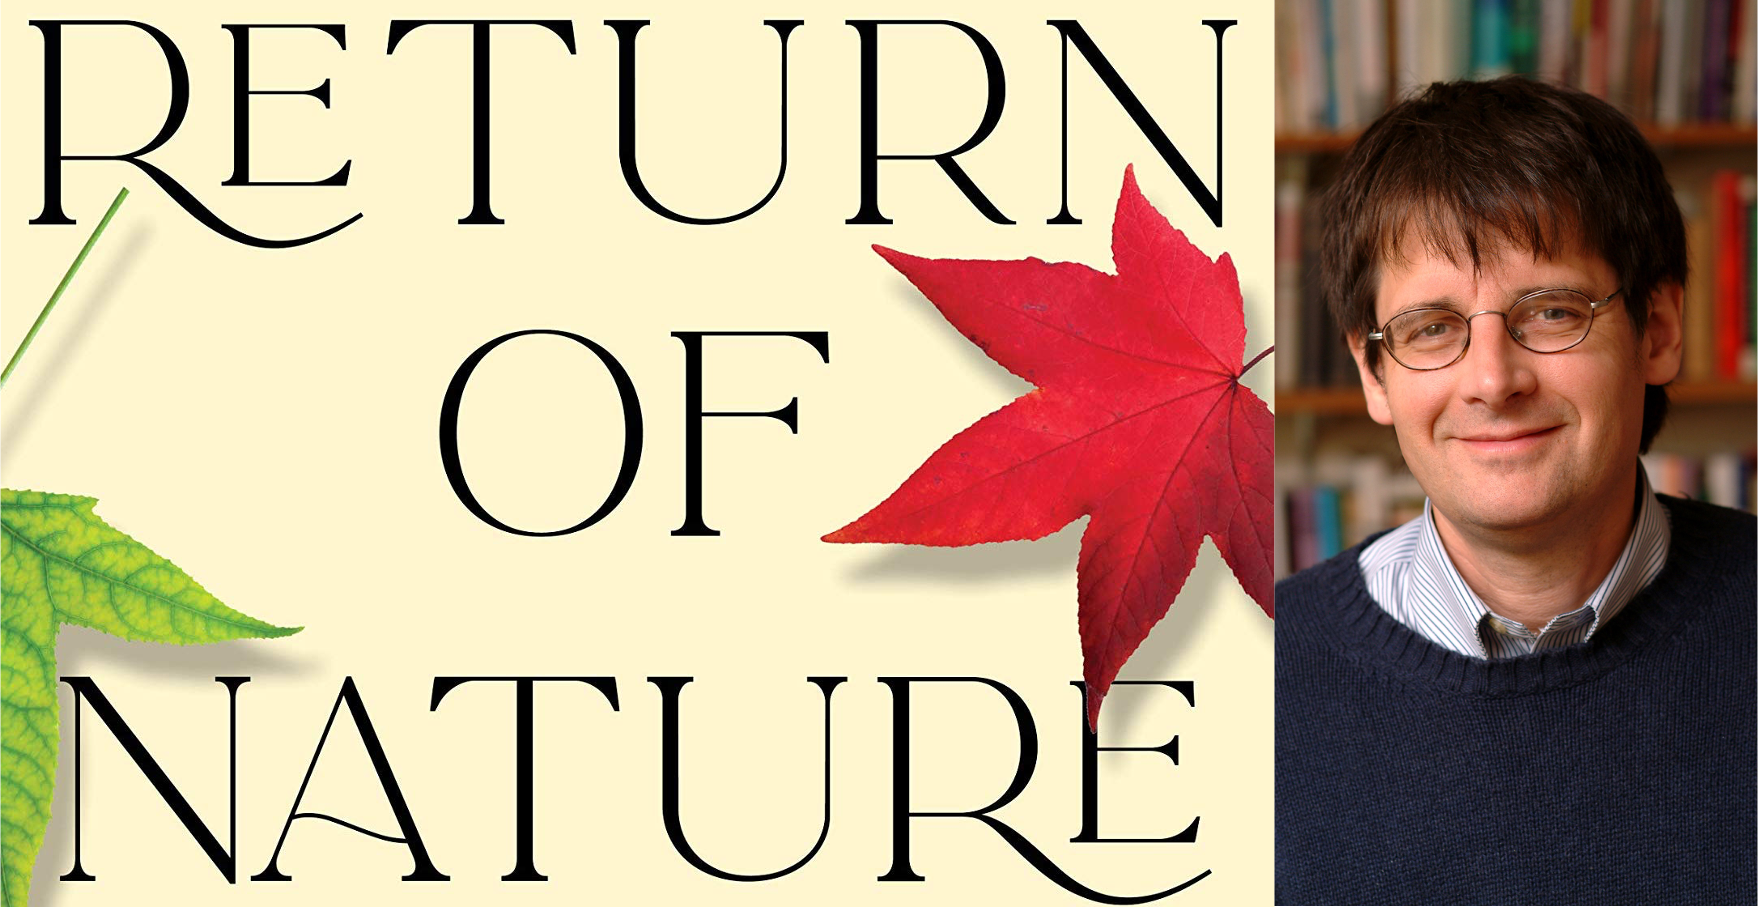 On the left, a picture of John Bellamy Foster's book Return of Nature. On the right, a photo of him wearing a sweater and glasses.